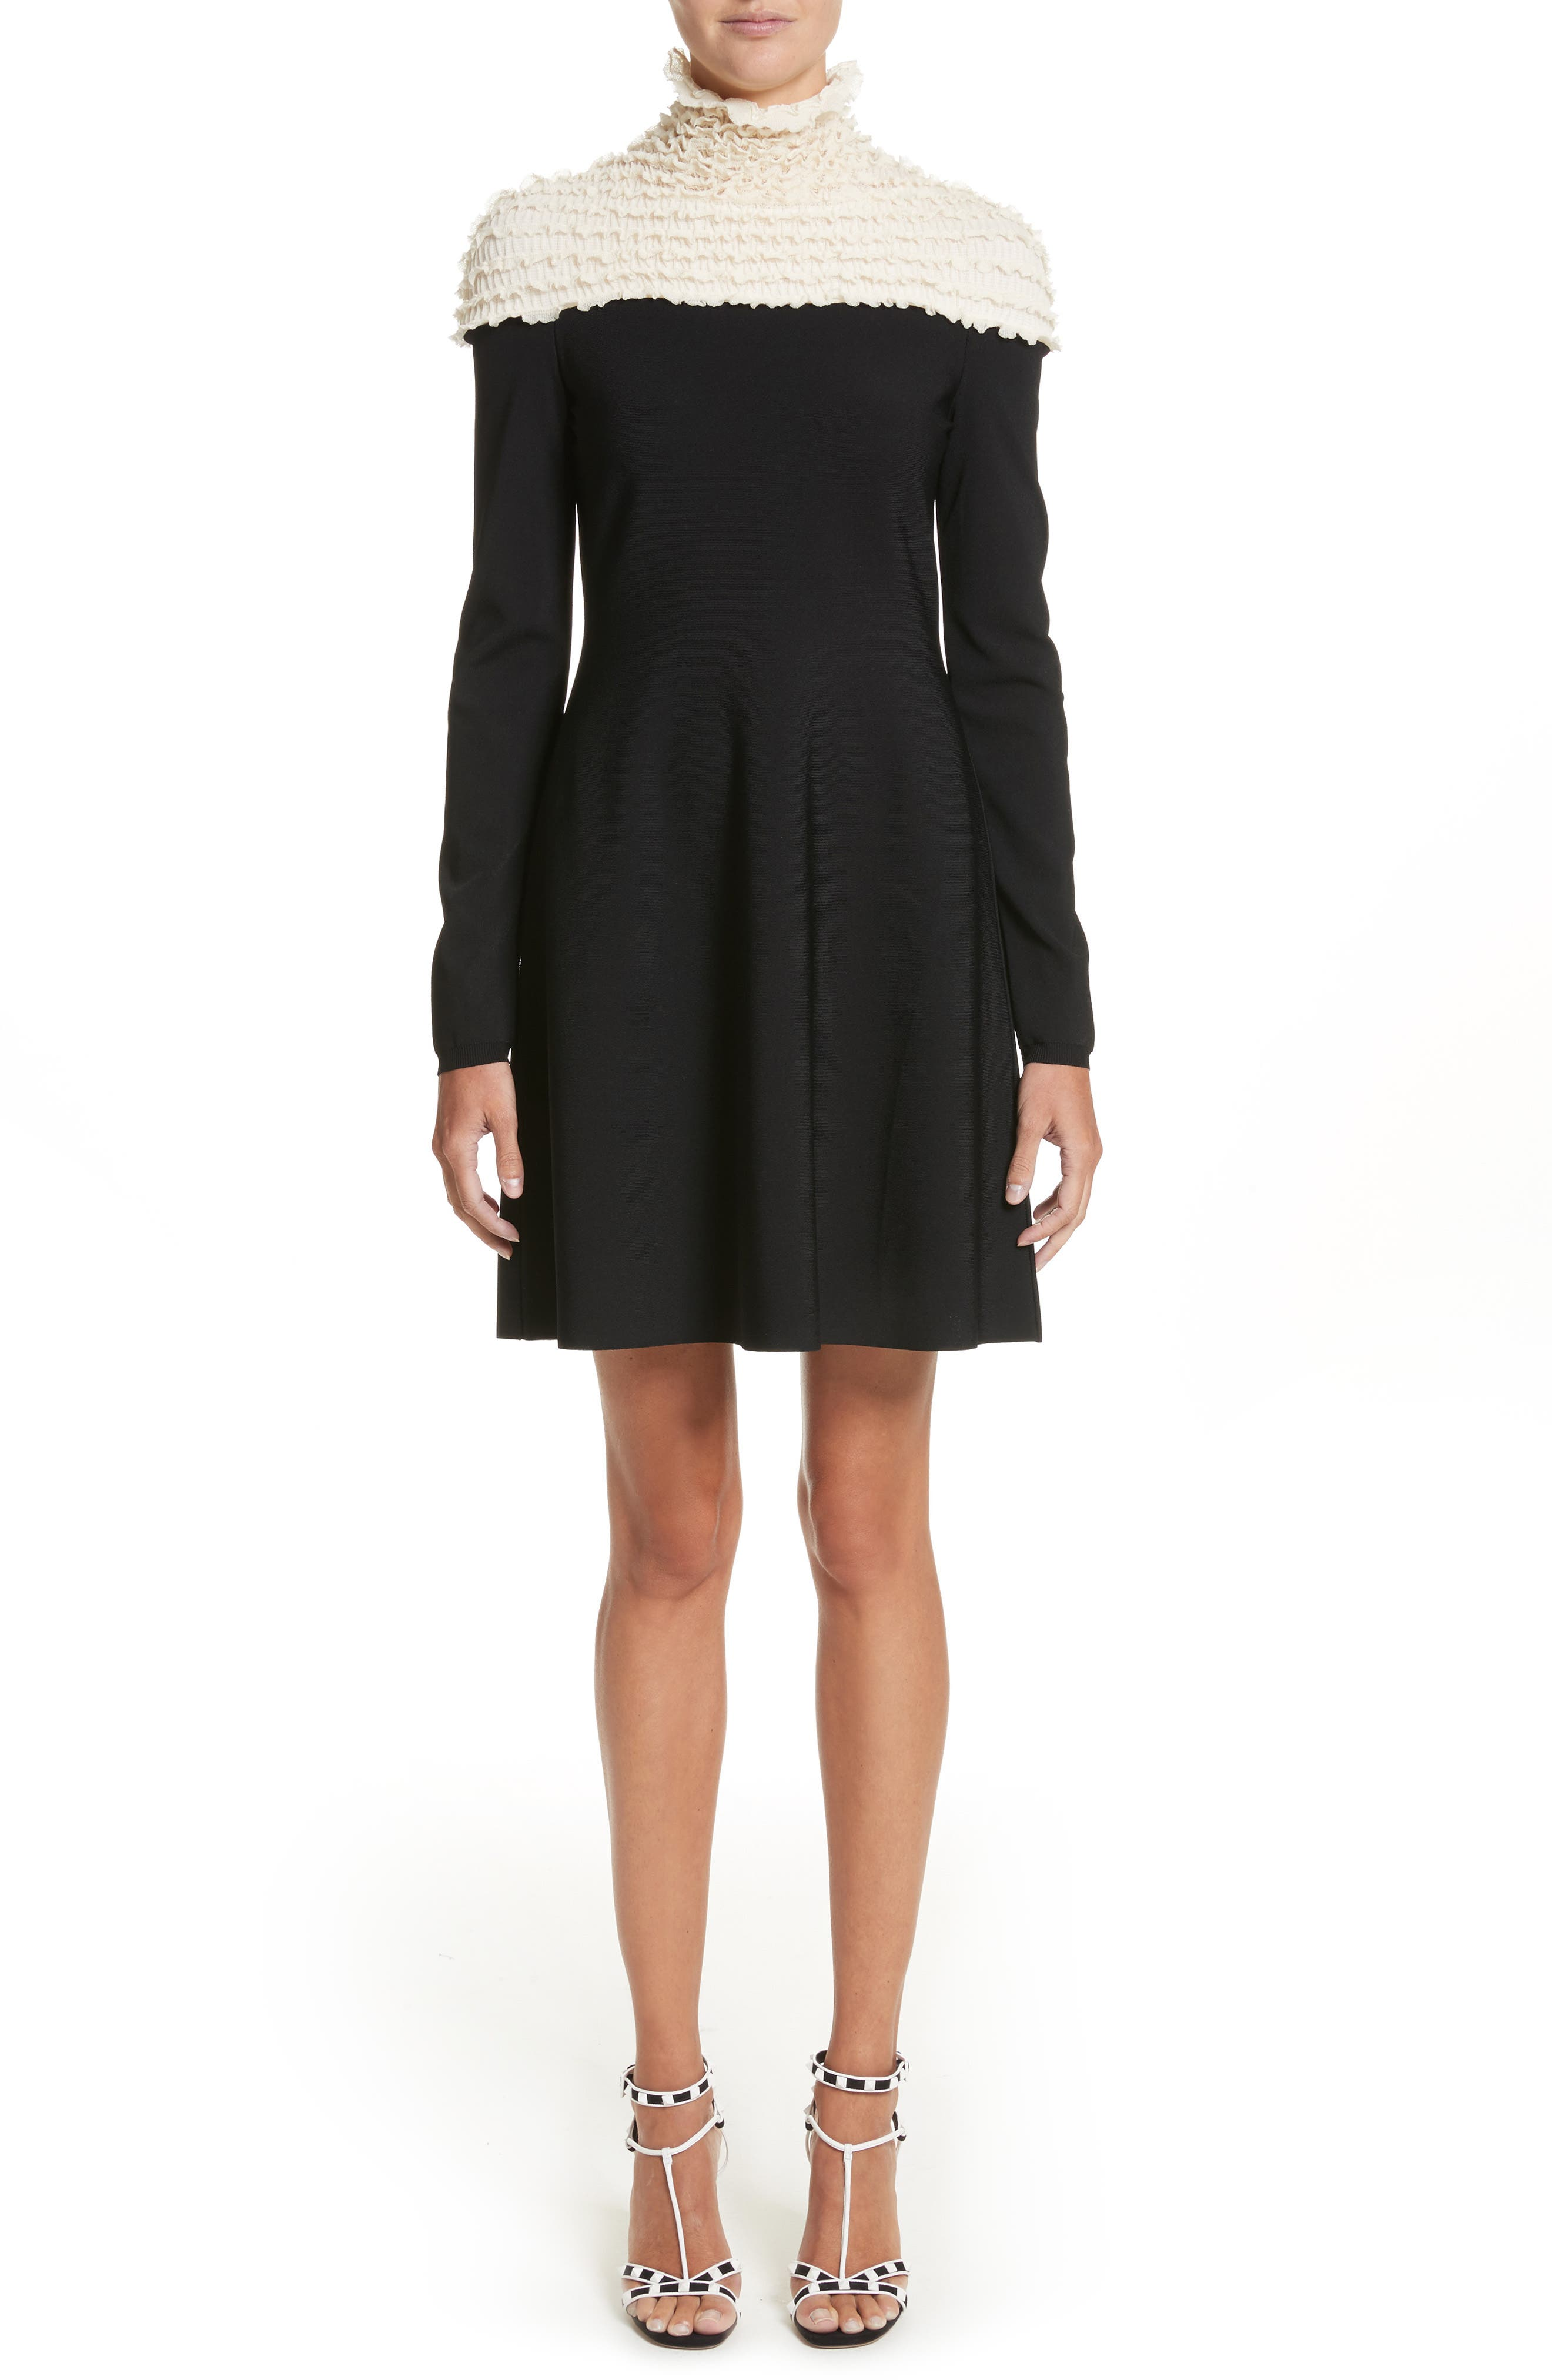 Valentino Ruffle Neckline Knit Dress